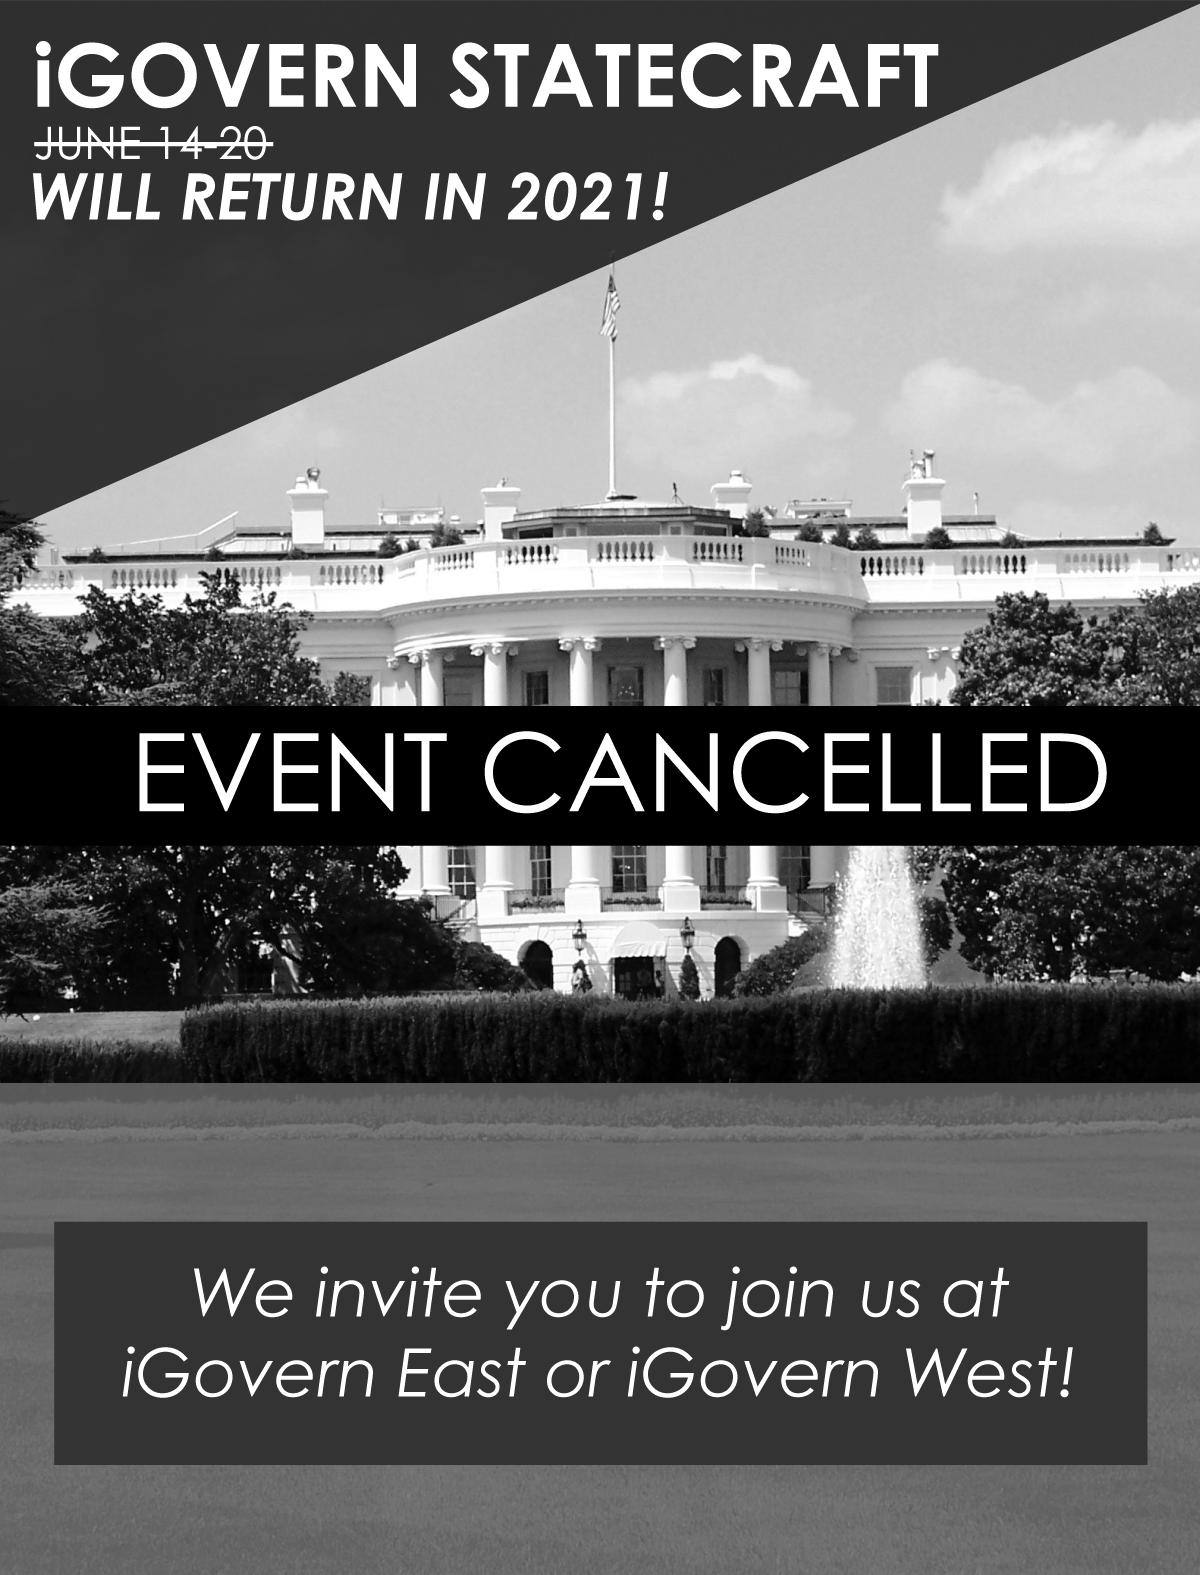 SC Tall 2020 Canceled V.2 FINAL-01